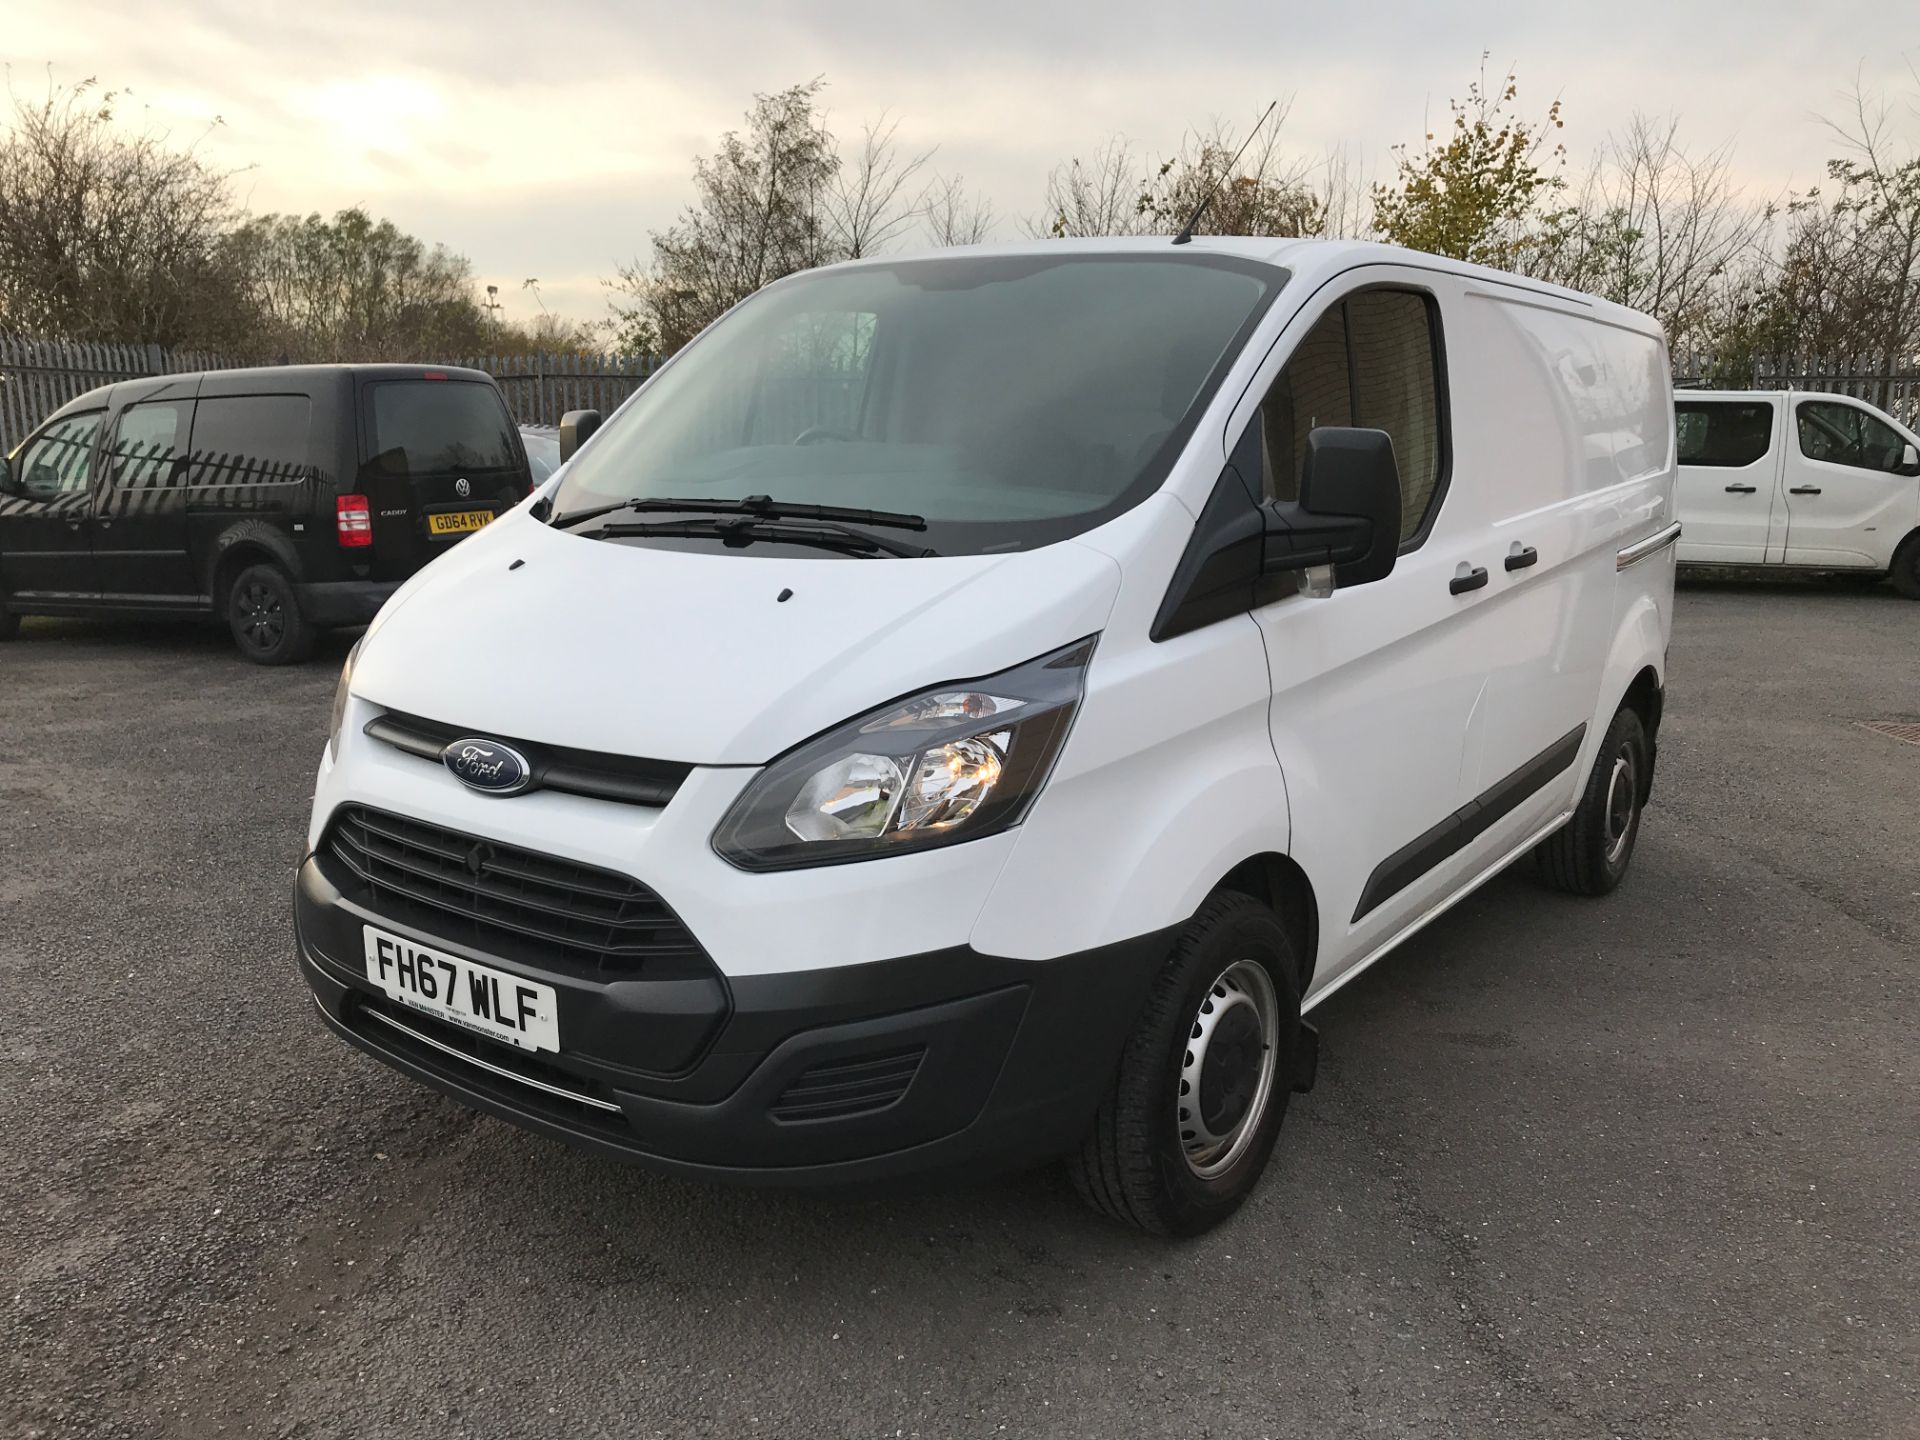 2018 Ford Transit Custom 290 L1 2.0TDCI 105PS LOW ROOF EURO 6 (FH67WLF) Image 13